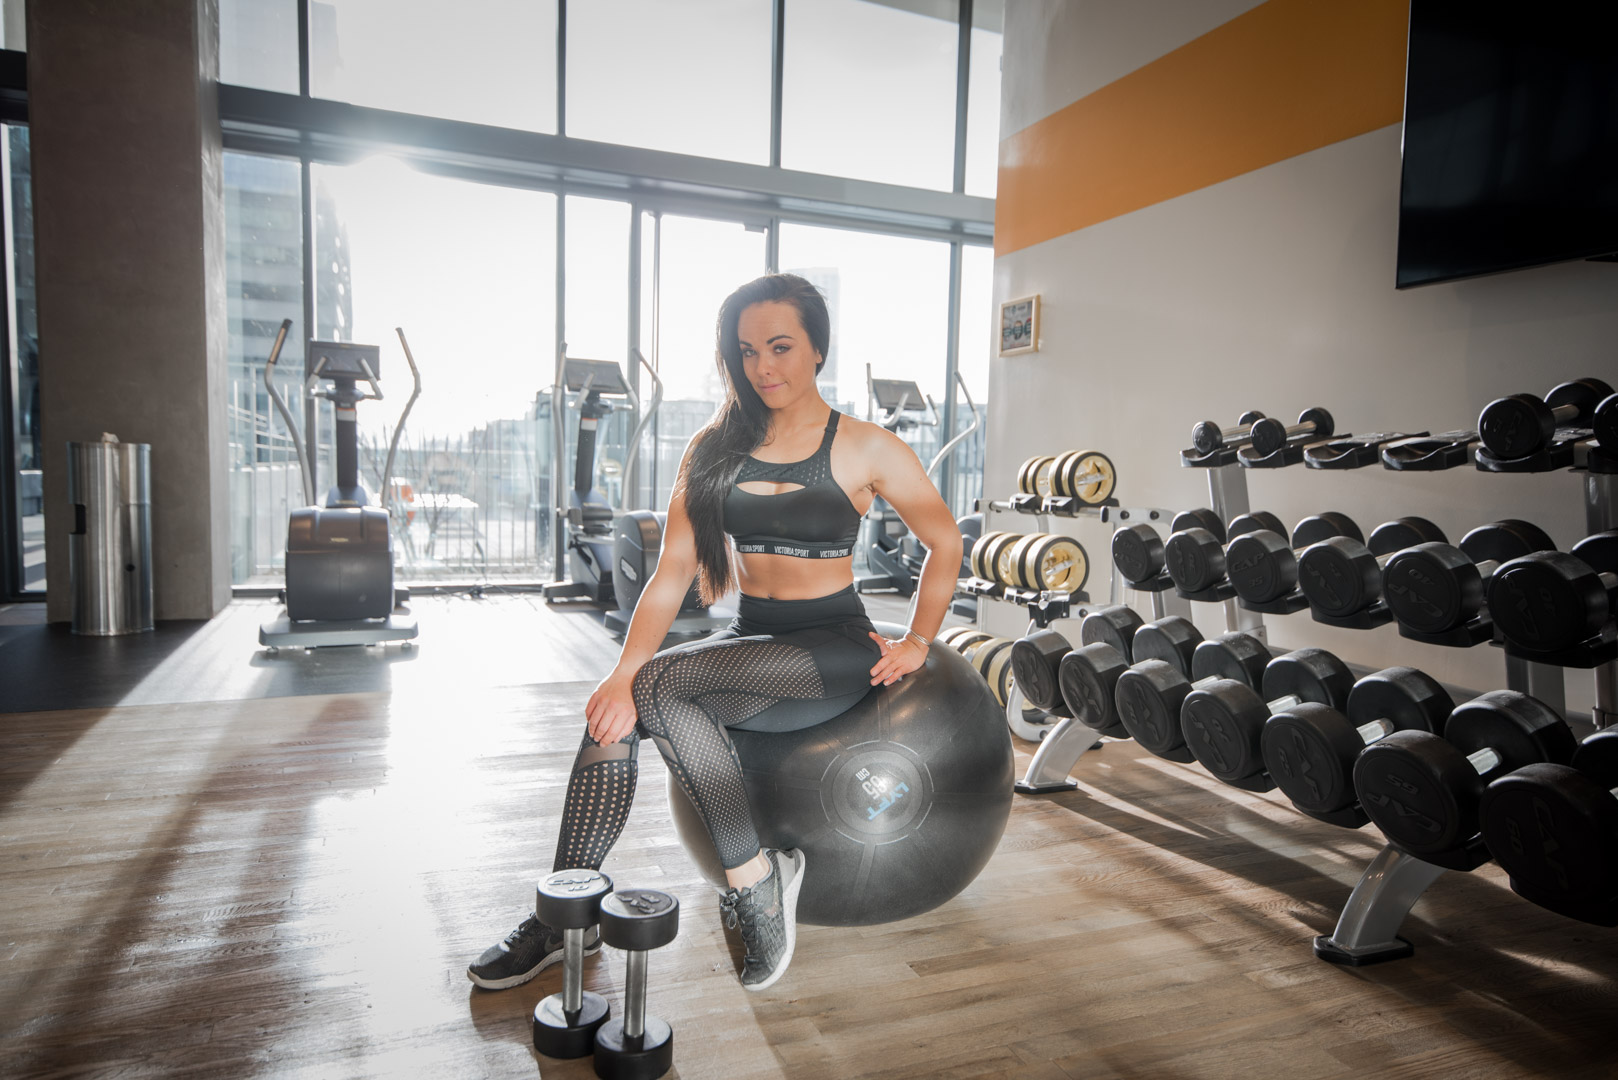 Daniella, Fitness, Platinum Plates, Denver, training, personal trainer, nutrition, stability ball, workout